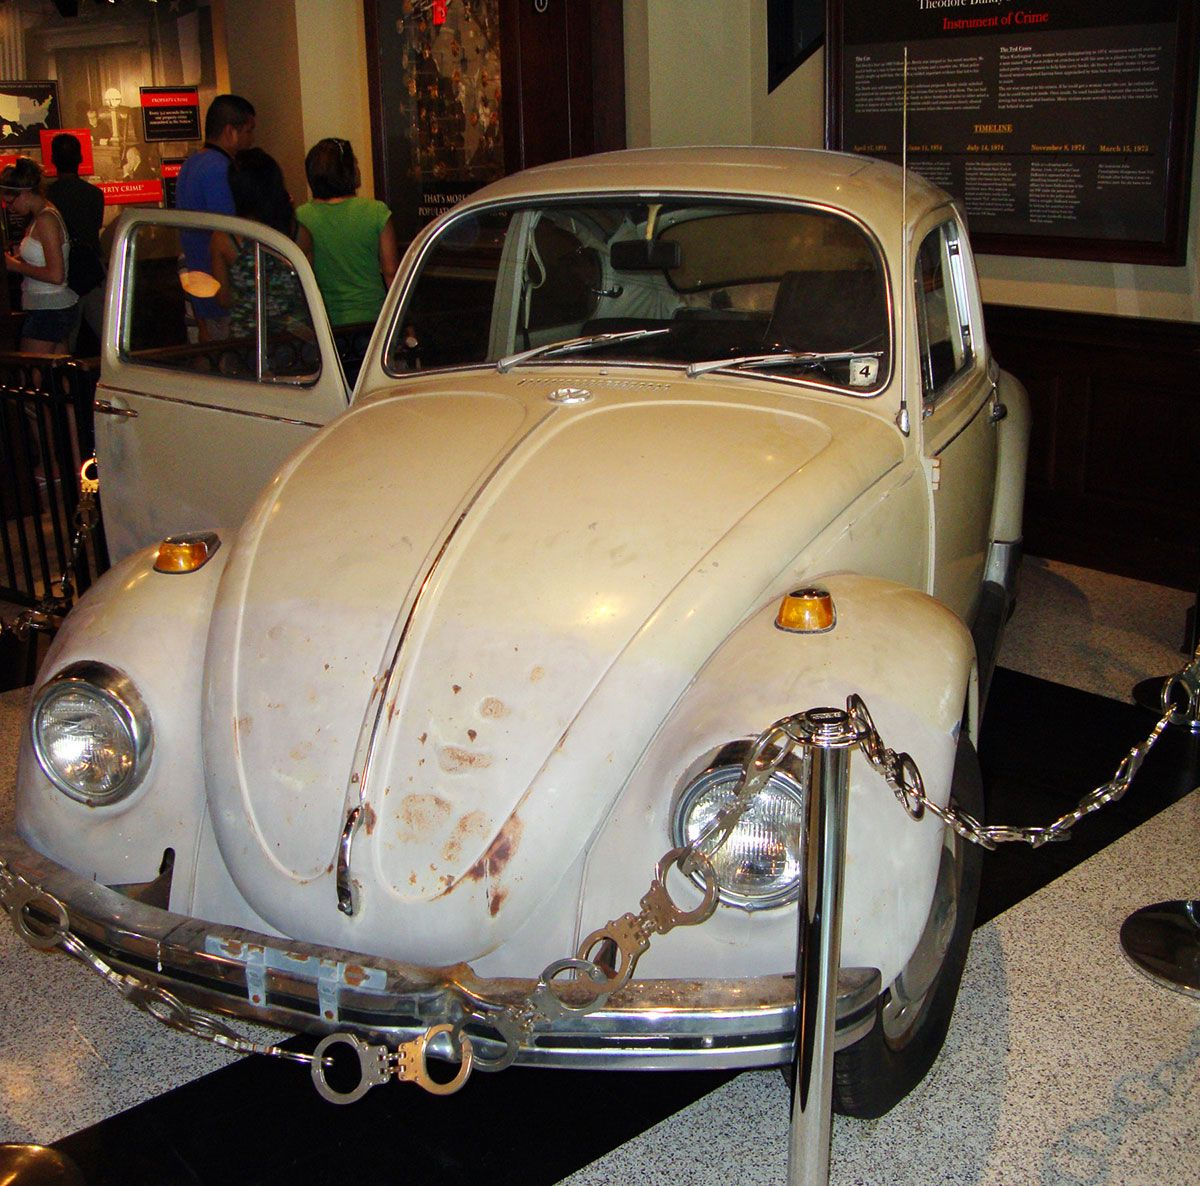 Bundy's VW is displayed in a crime museum today.